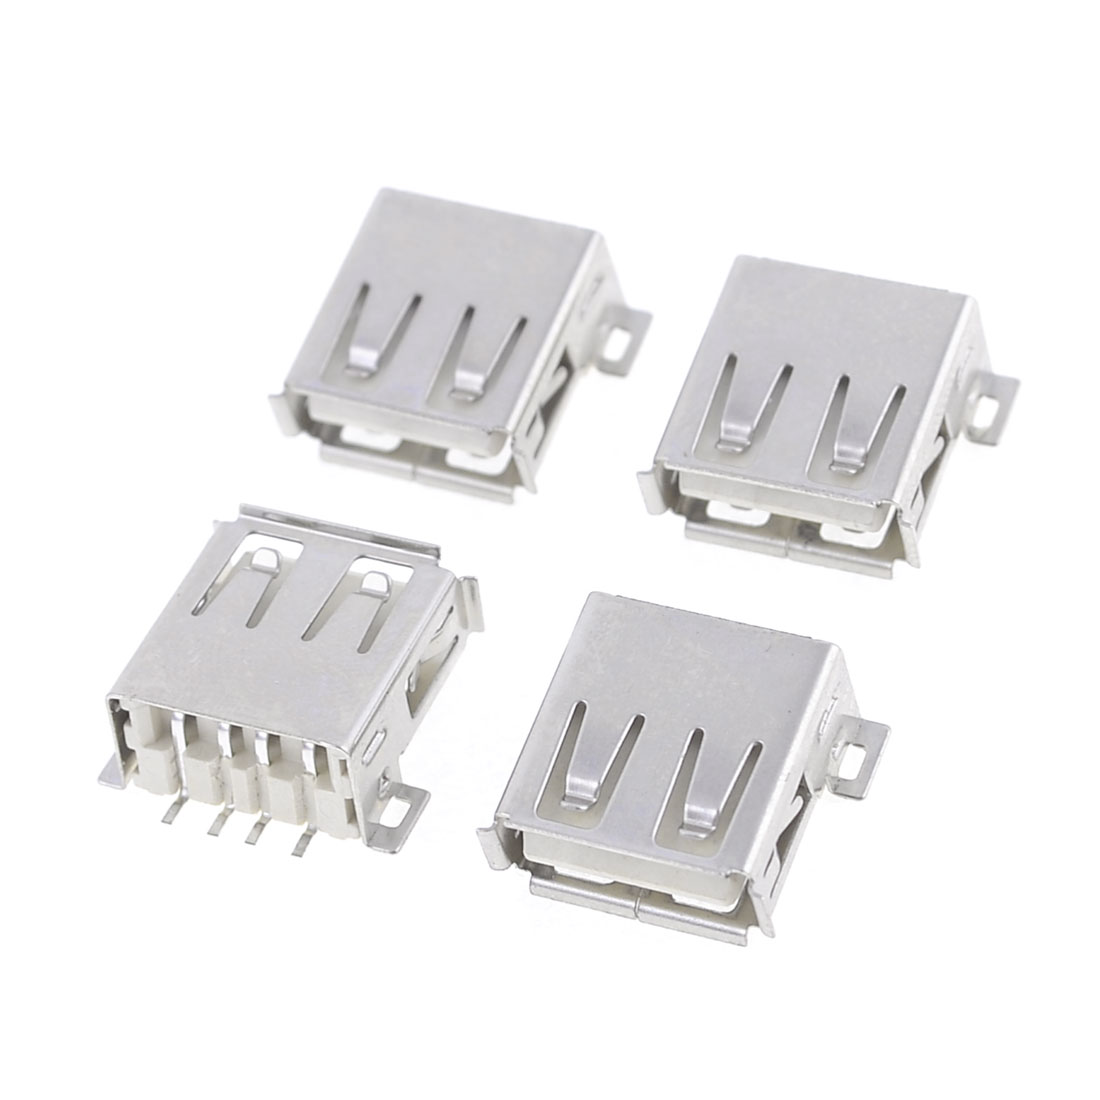 4 Pcs USB 2.0 A Female Jack Socket PCB SMT Connector Adapter for Computor